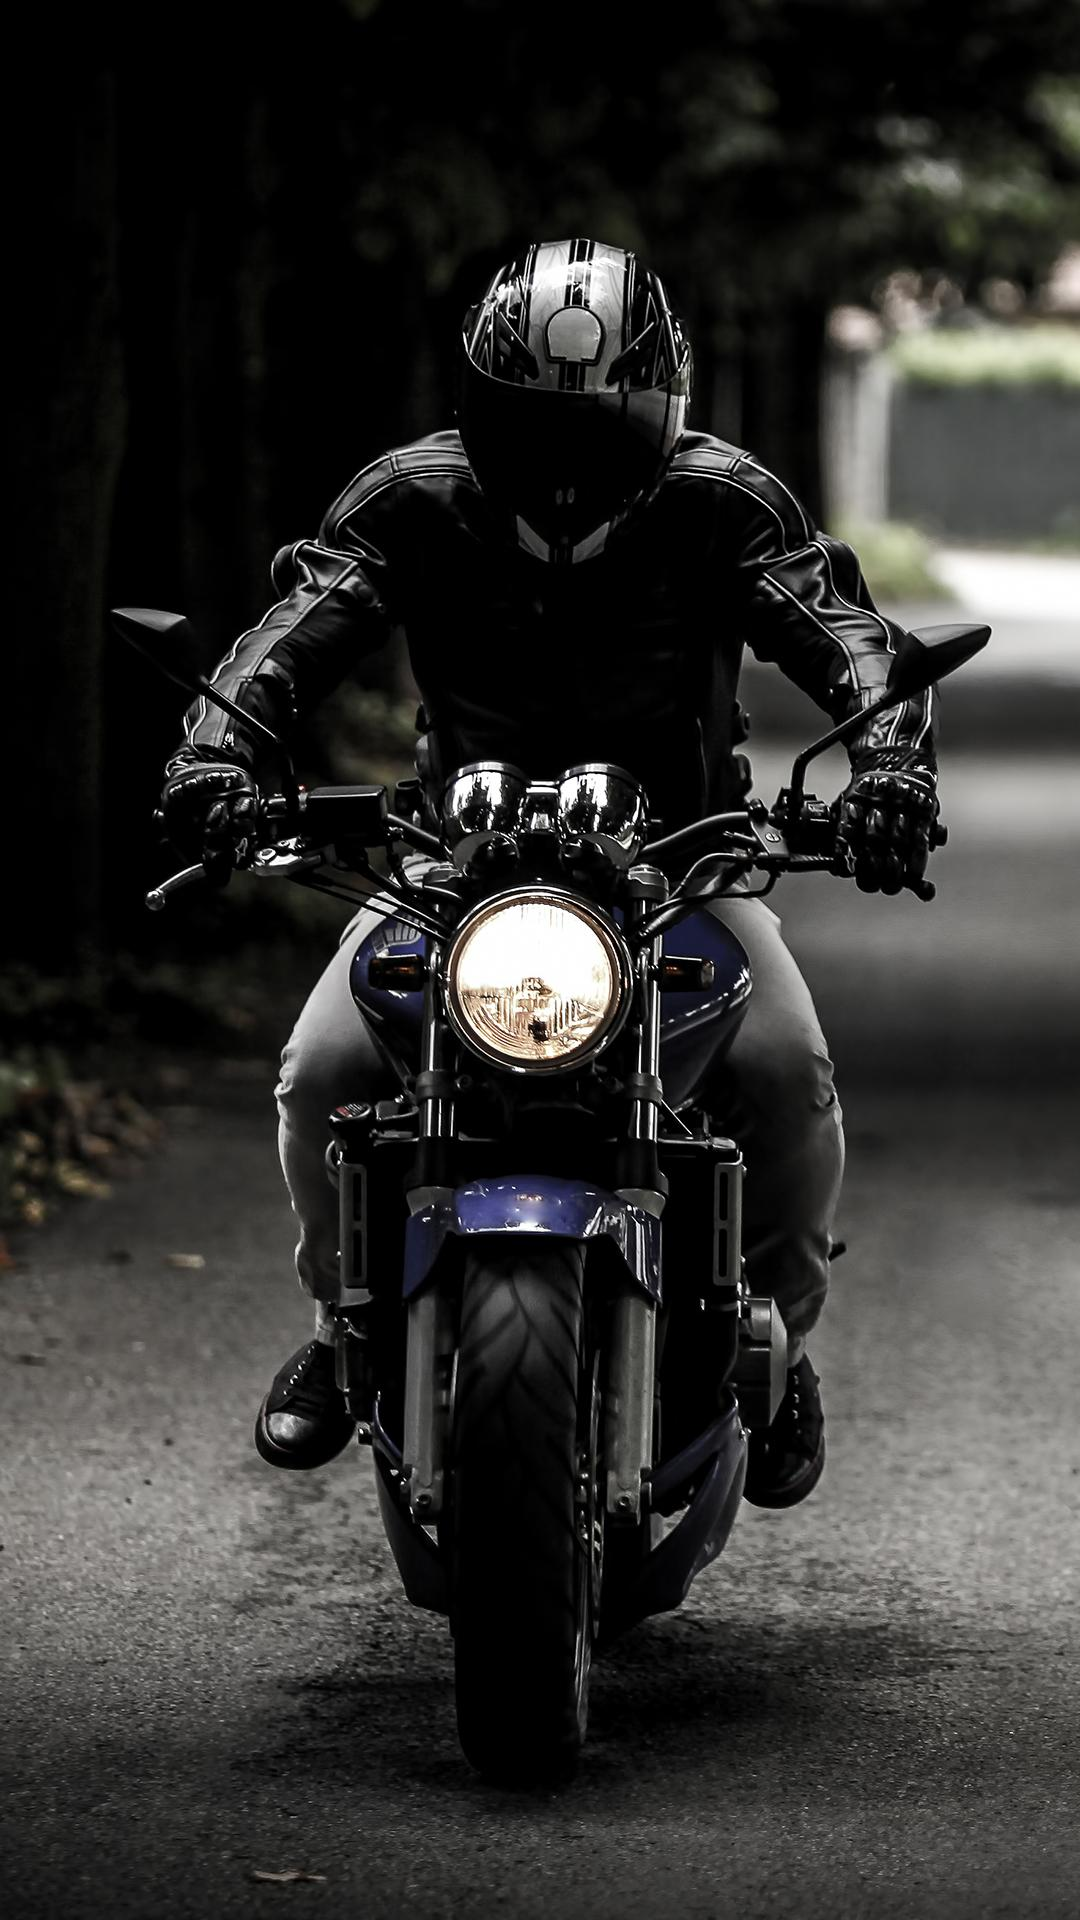 Android Phone Motorcycle Wallpapers Wallpaper Cave